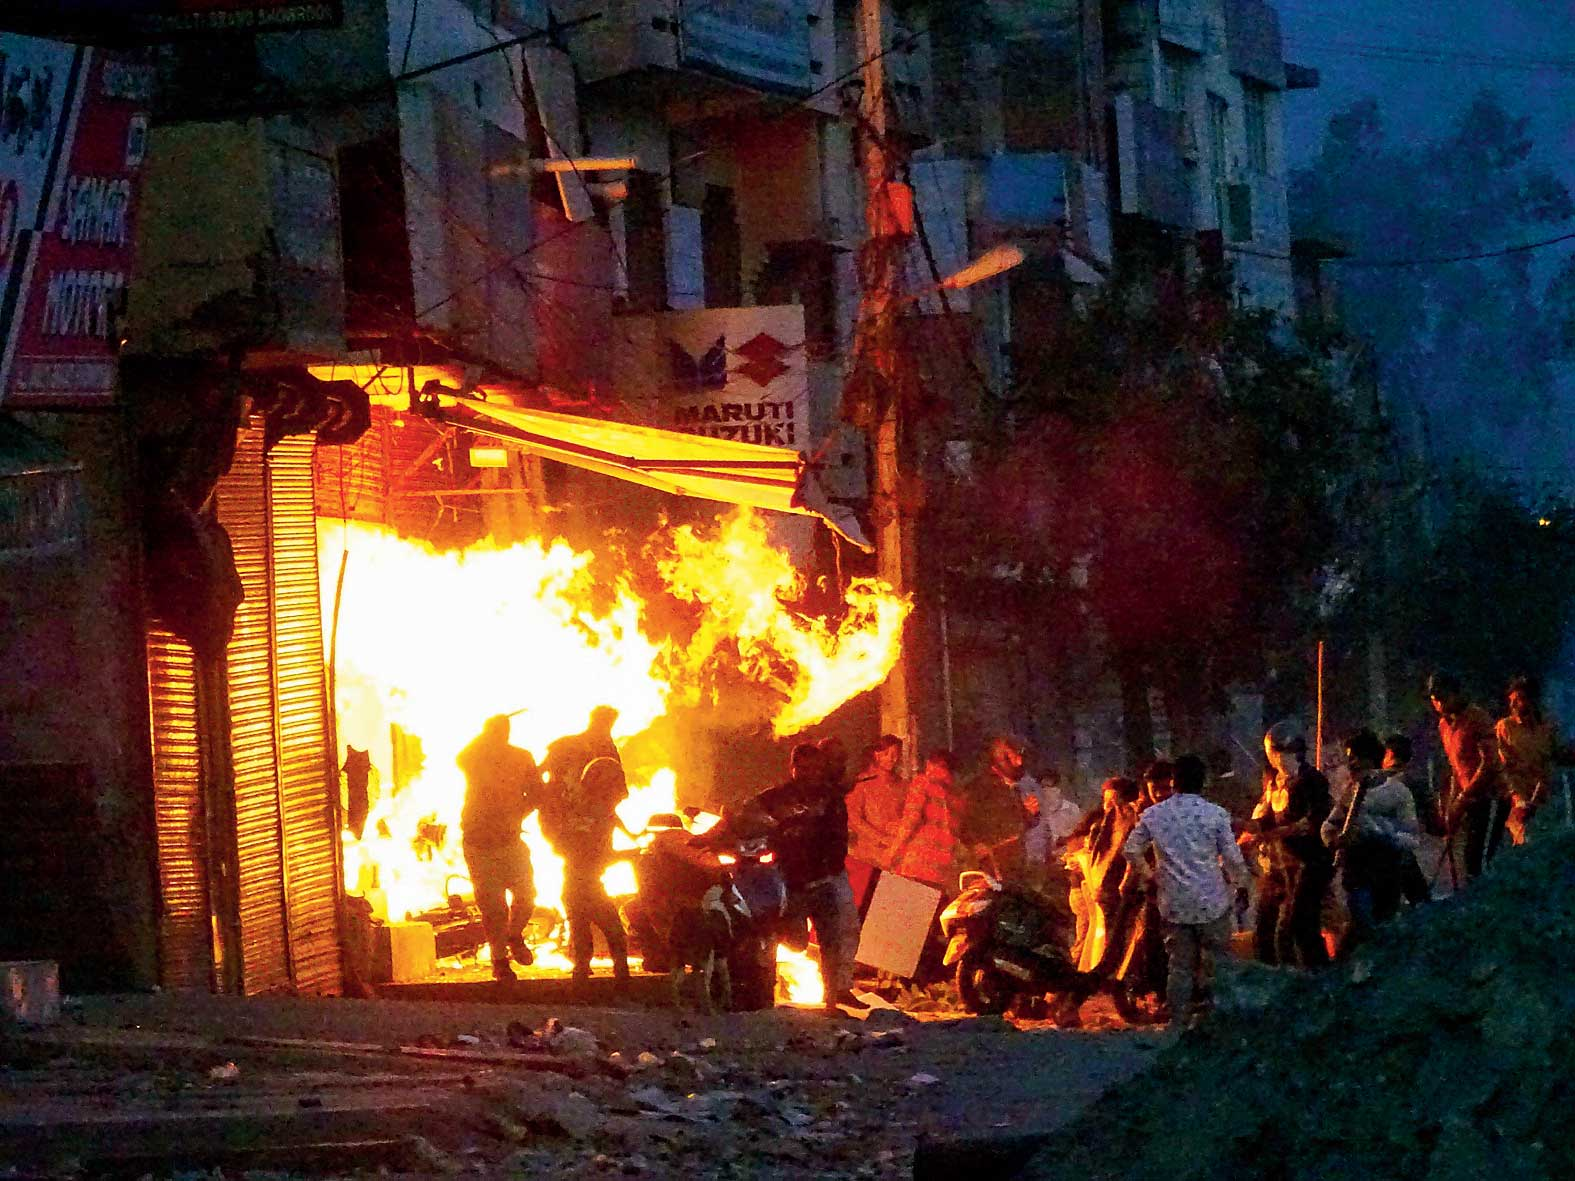 Rioters set ablaze a shop in northeast Delhi on Tuesday.